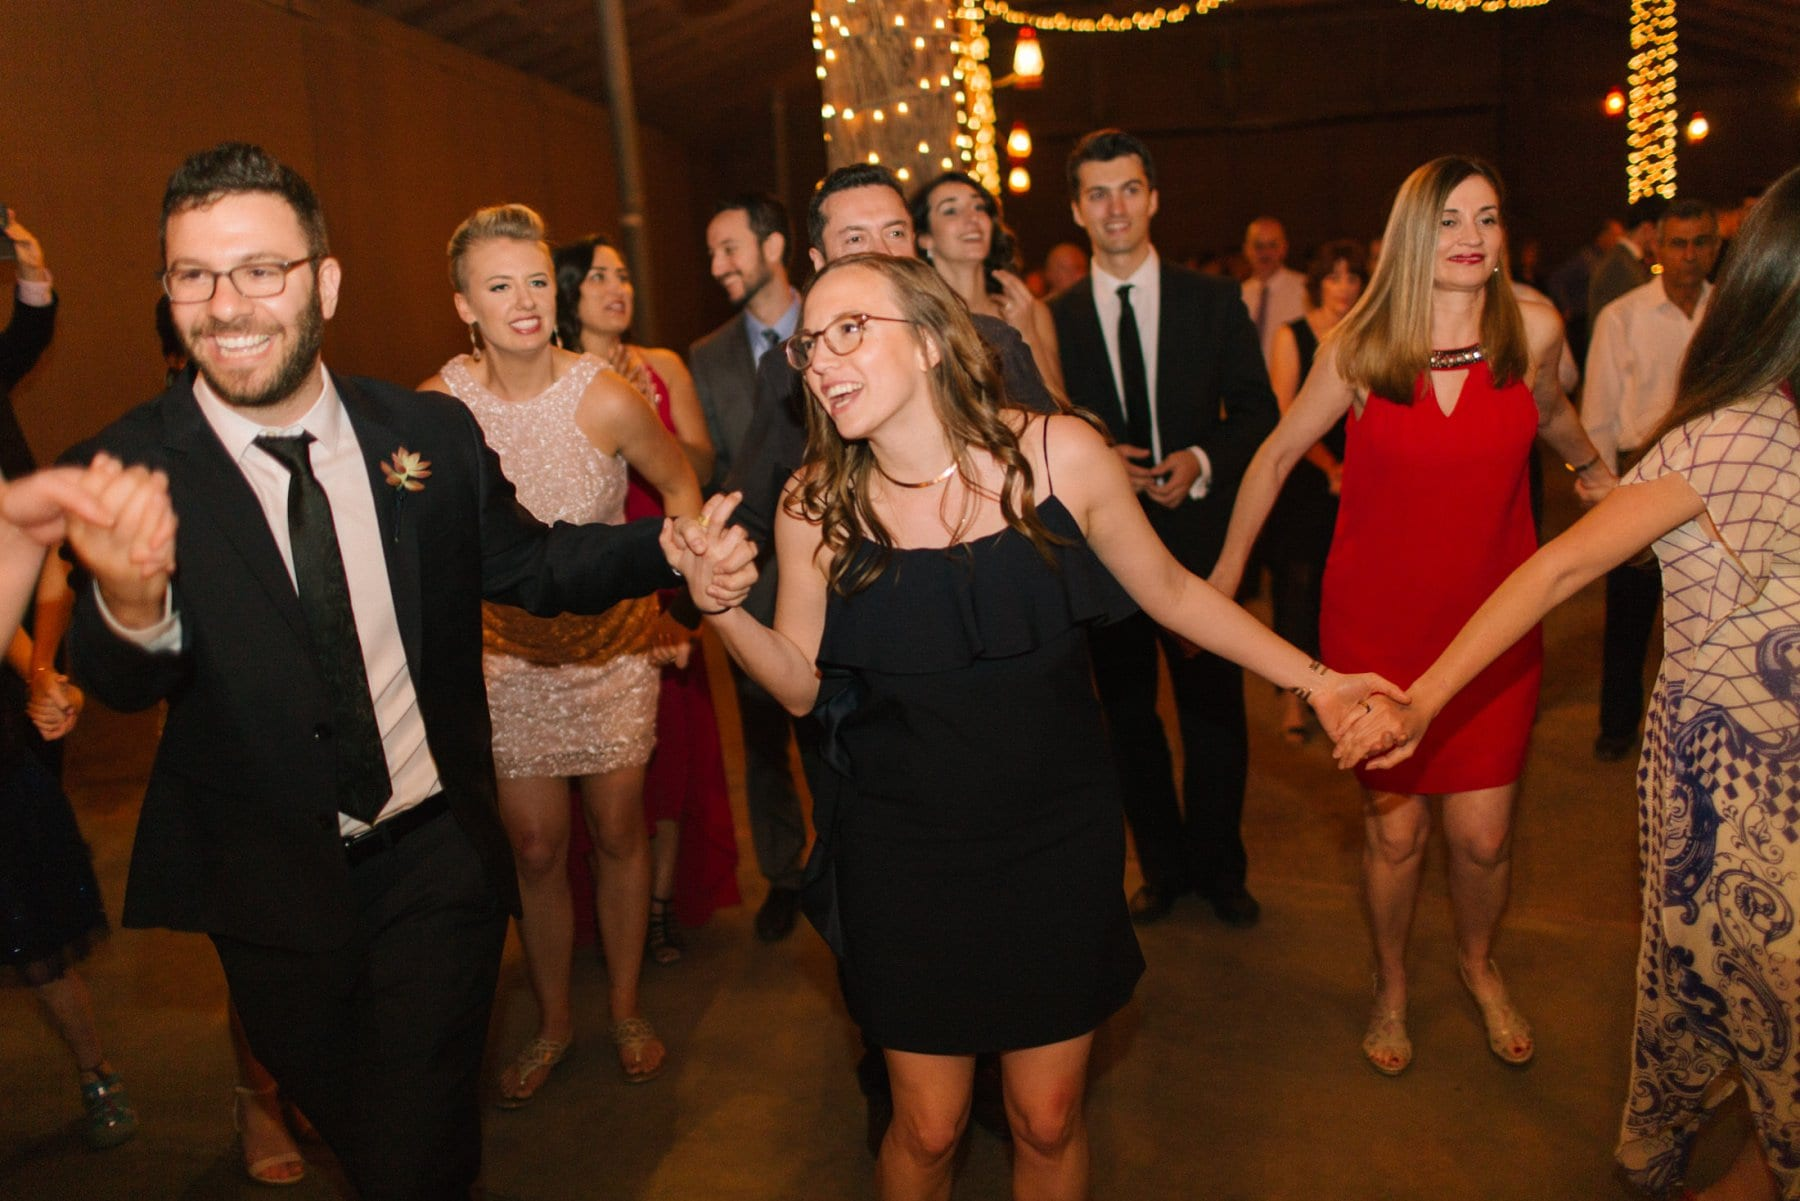 wedding horah at Desert Foothills barn wedding